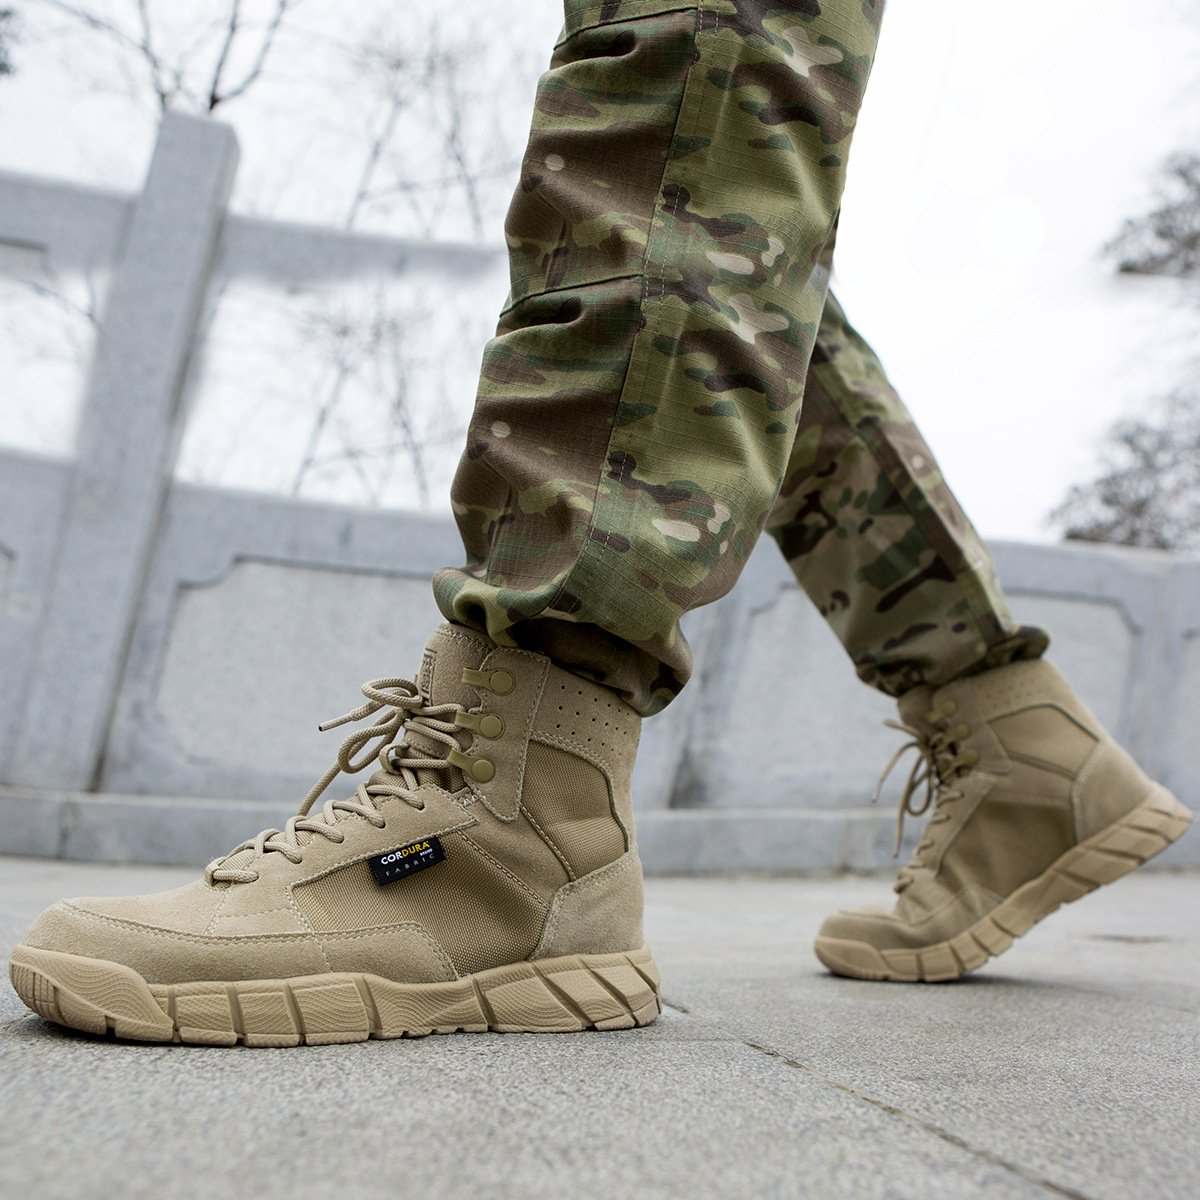 FREE SOLDIER Men's Tactical Boots 6'' inch Lightweight Military Boots for Hiking Work Boots Breathable Desert Boots (Tan, 7) by FREE SOLDIER (Image #6)